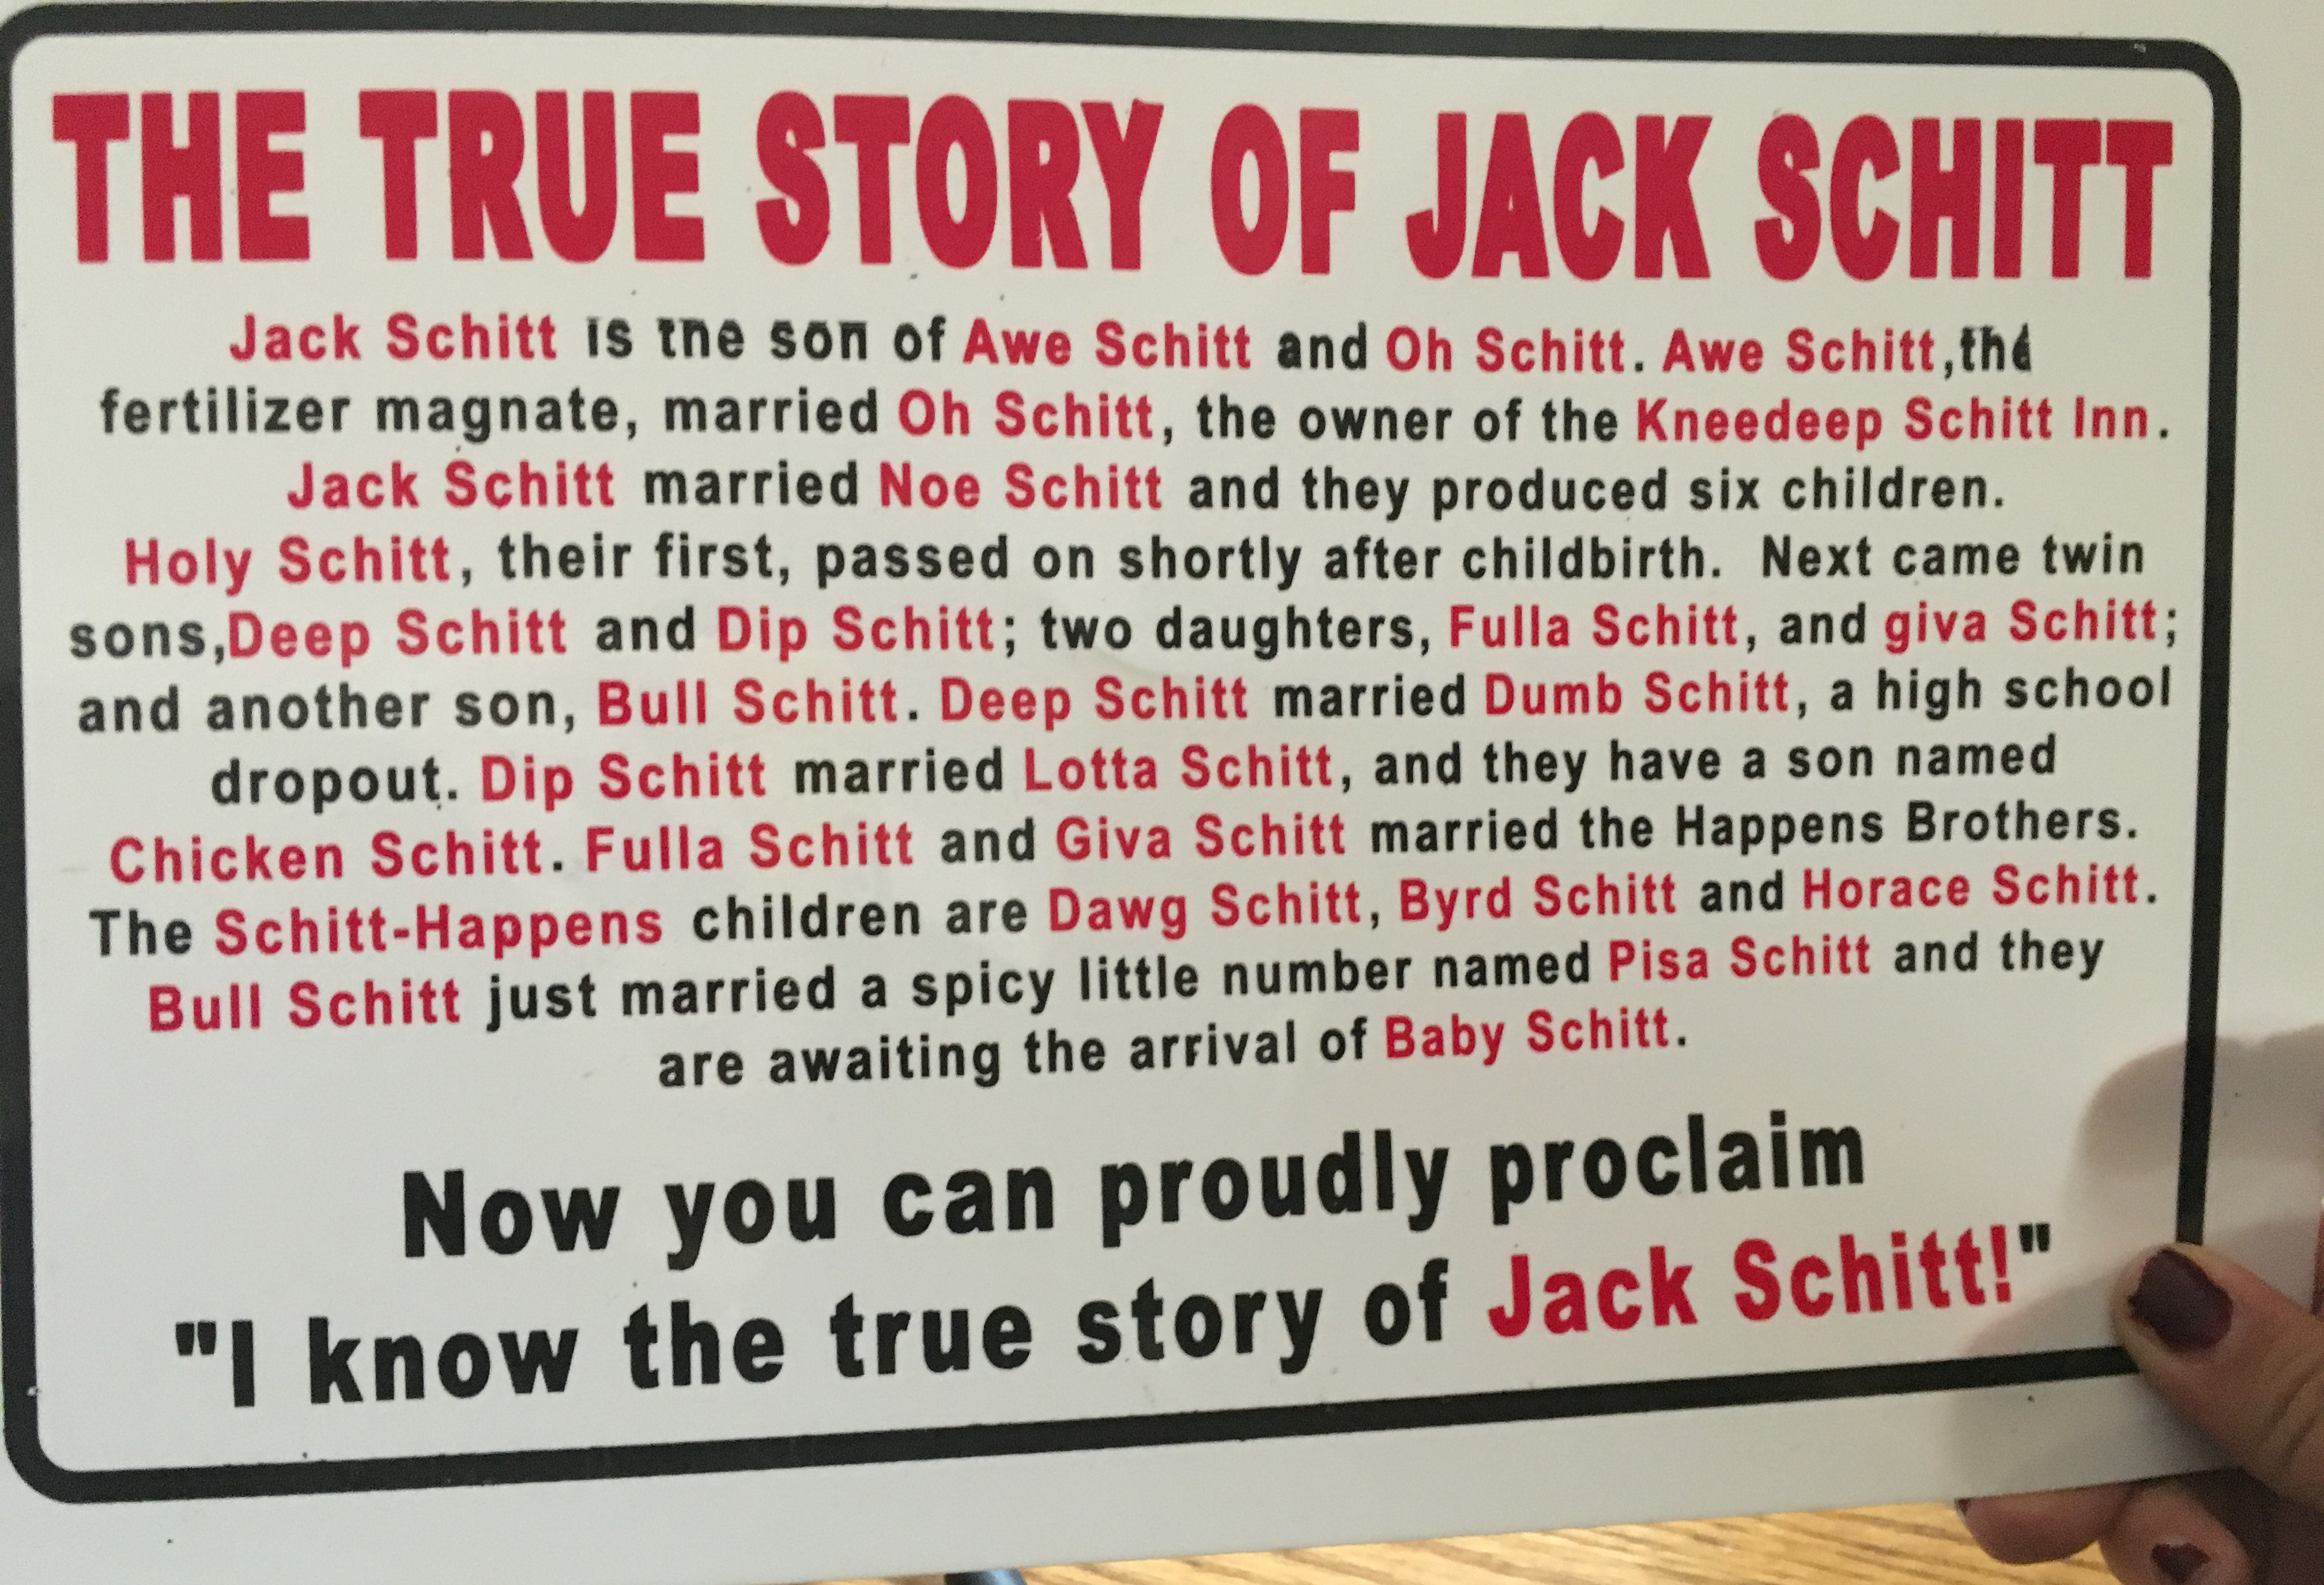 The true story of jack schitt